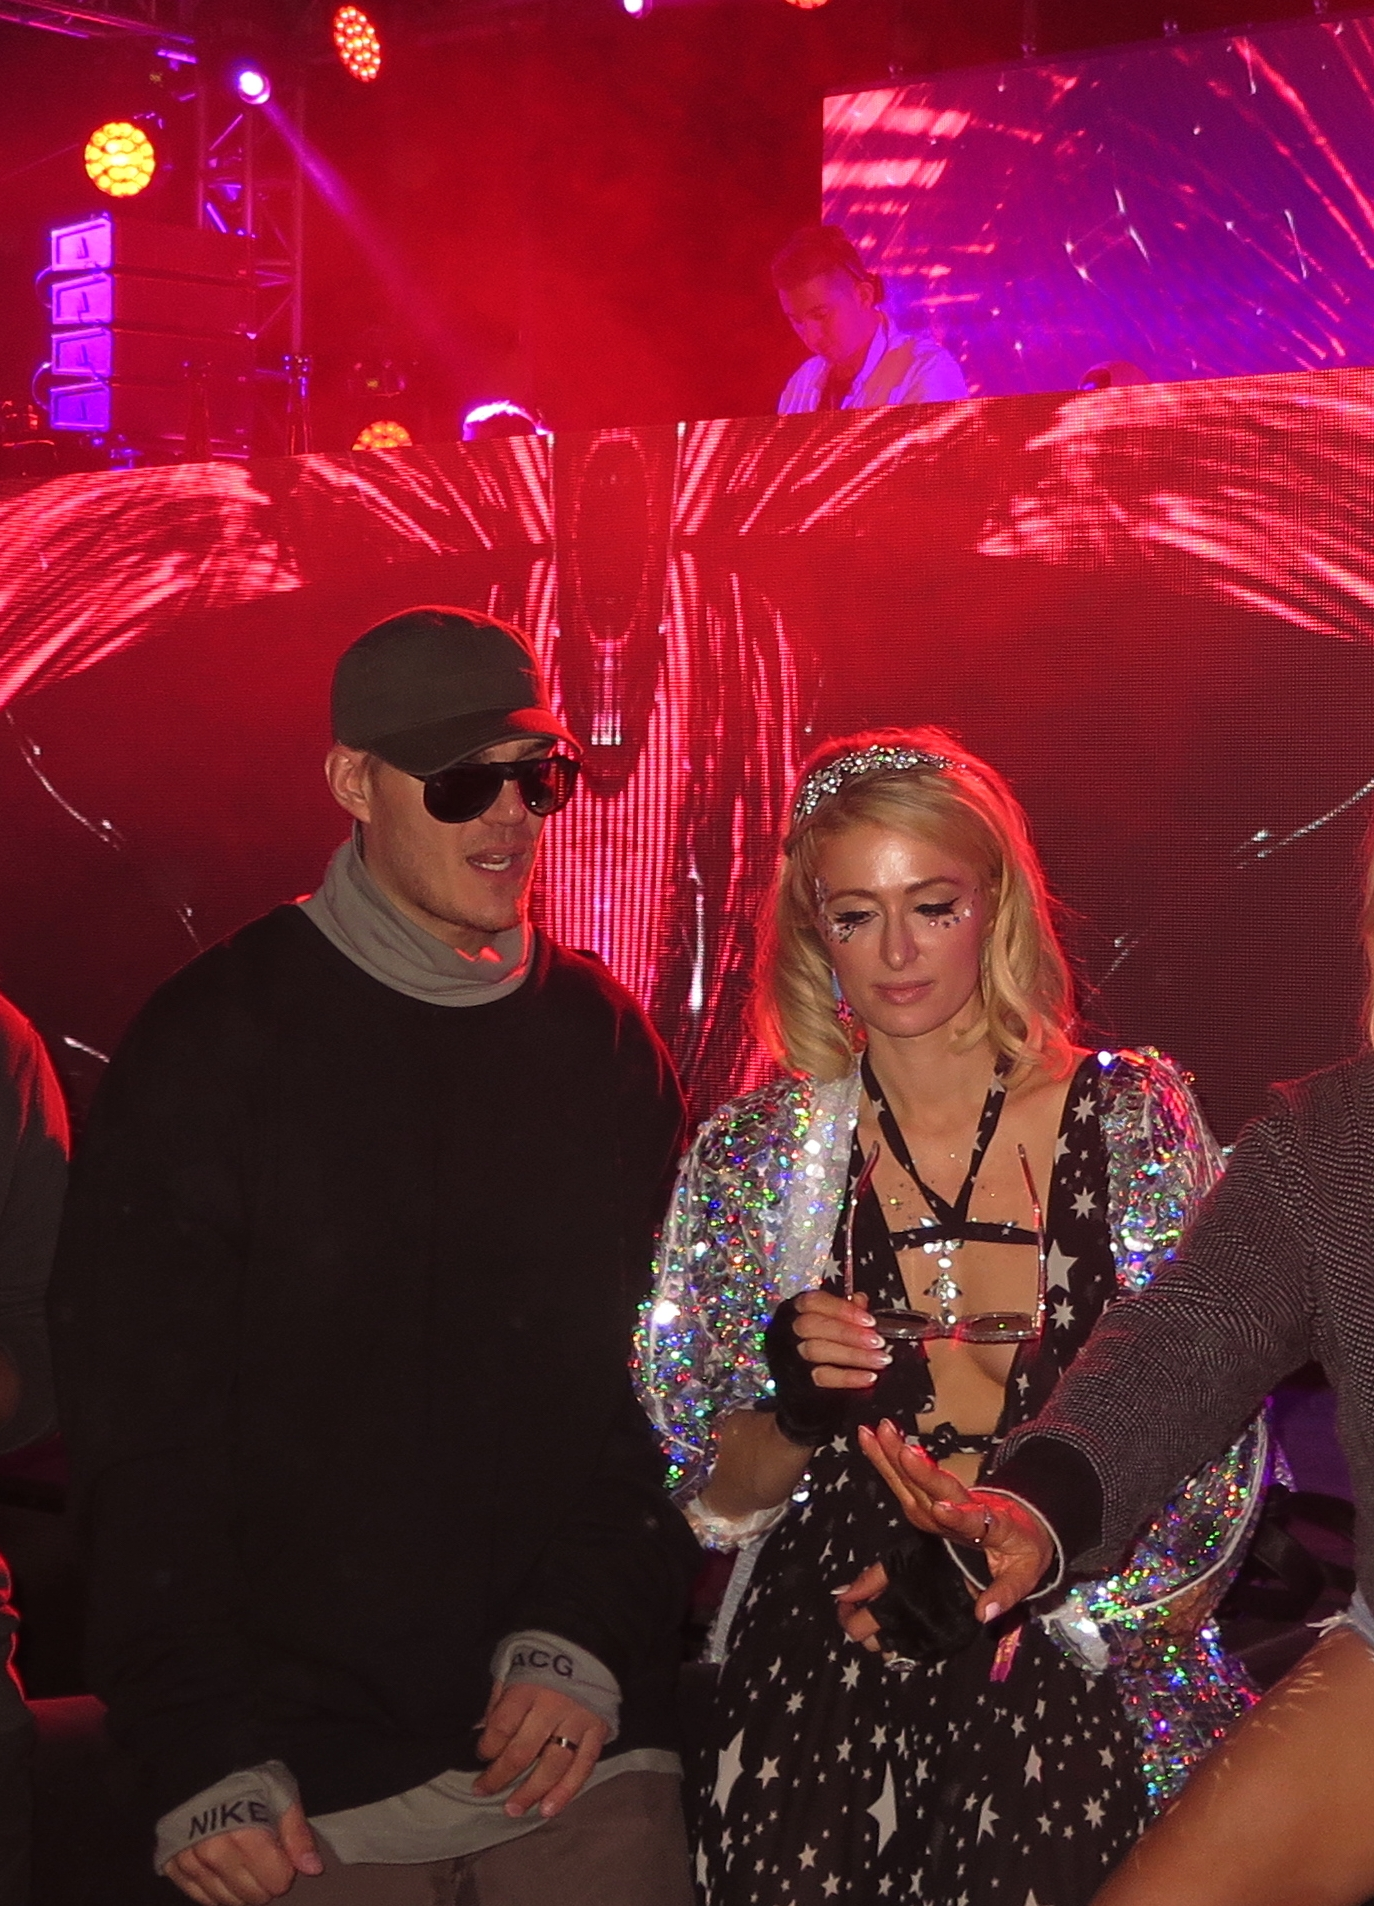 Paris Hilton  looked beautiful dancing with her fiancee  Chris Zylka  to  DJ Politik's  music behind her on stage.